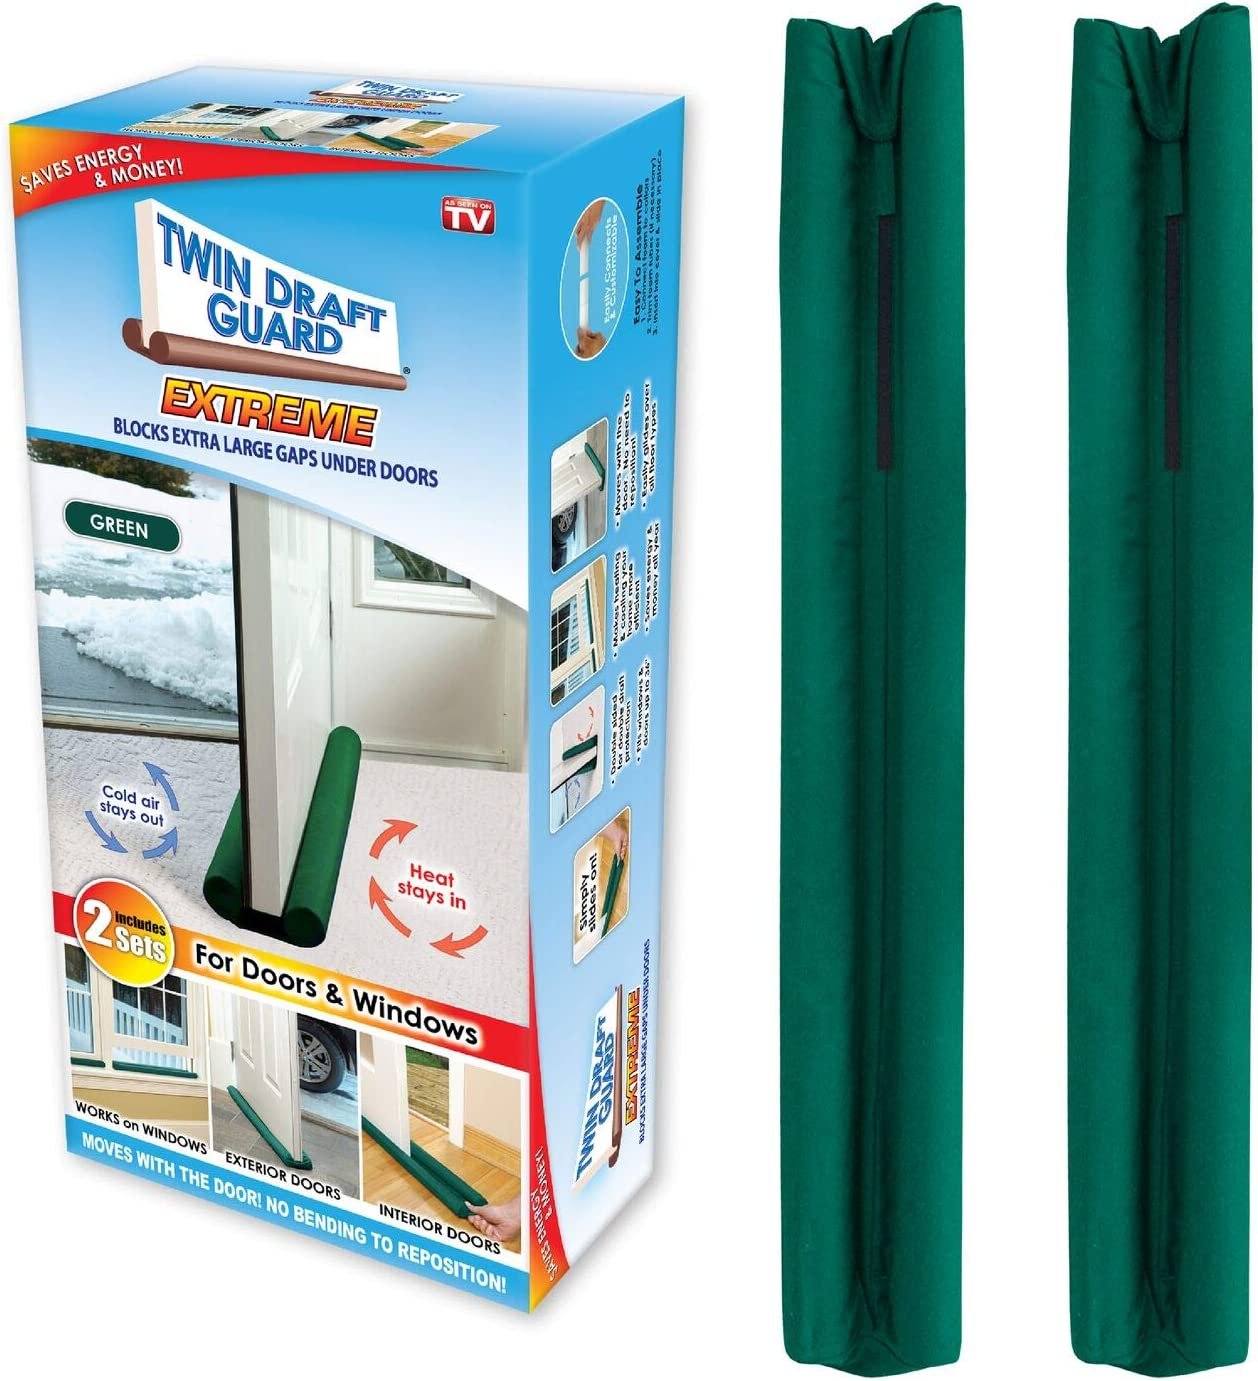 Green Twin Draft Guard 60226-DNA Energy Saving Under Door Draft Stopper Set of 2